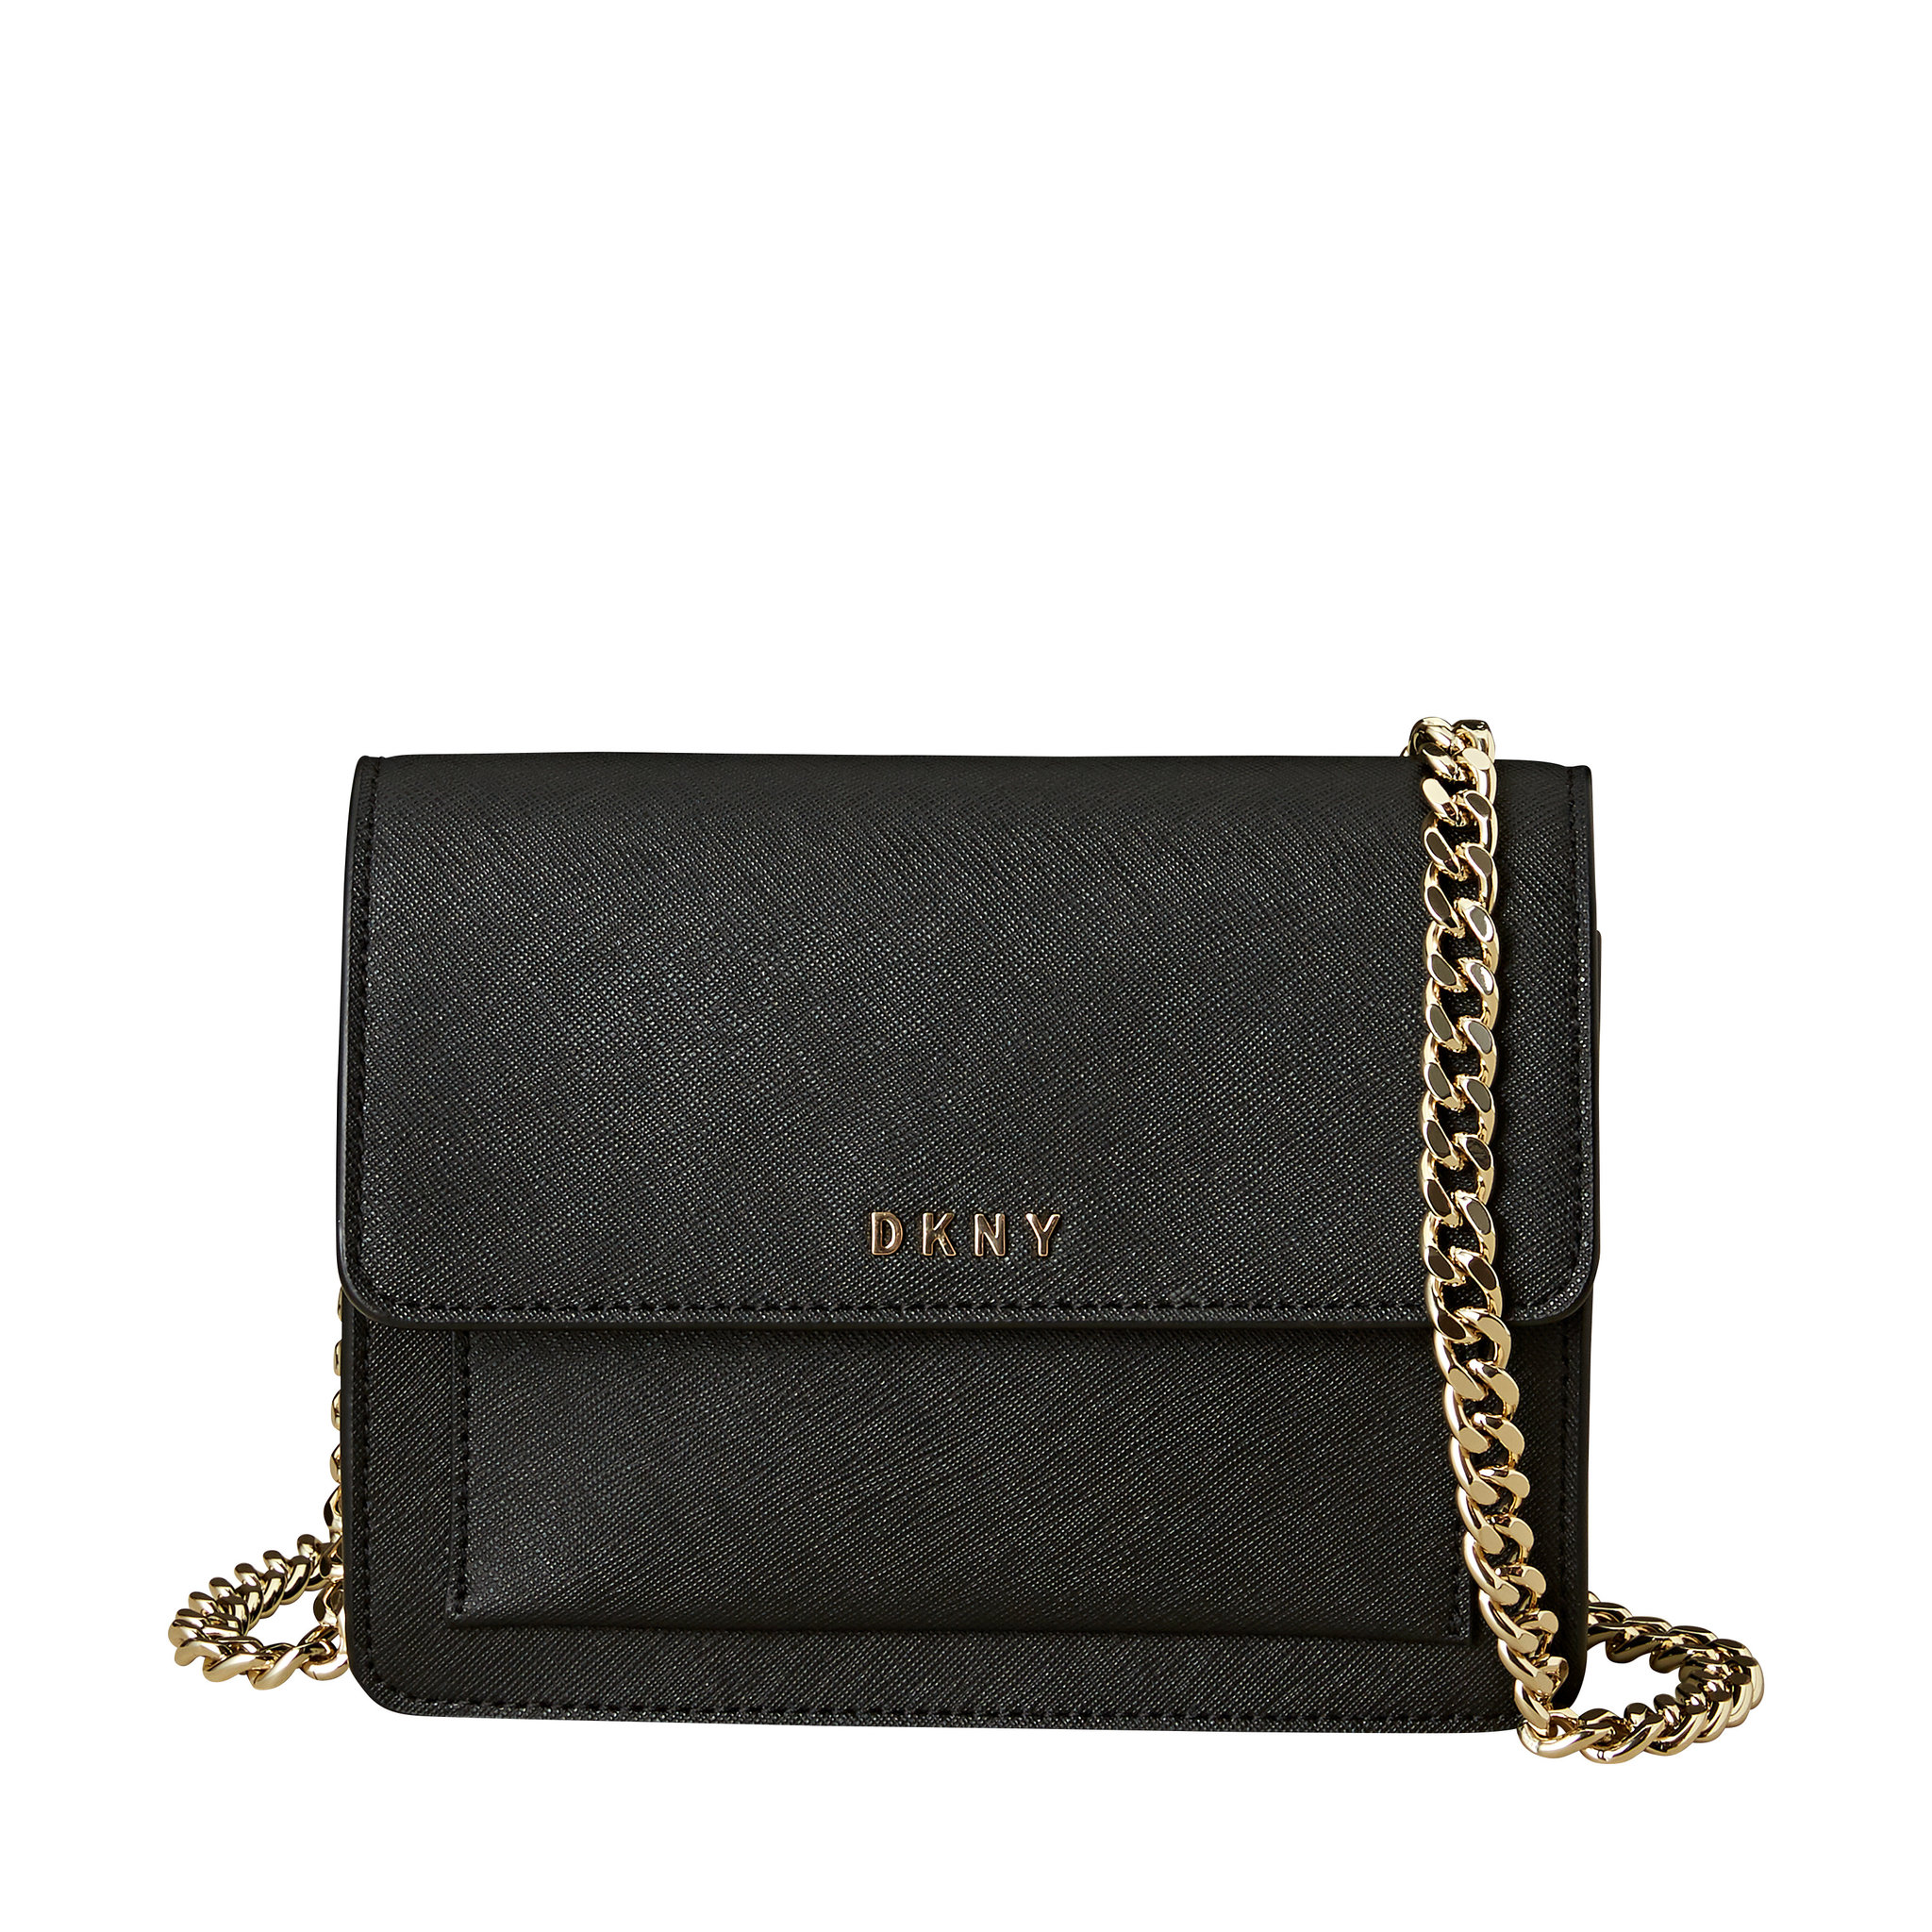 Bryant Park Mini Flap Crossbody, svart